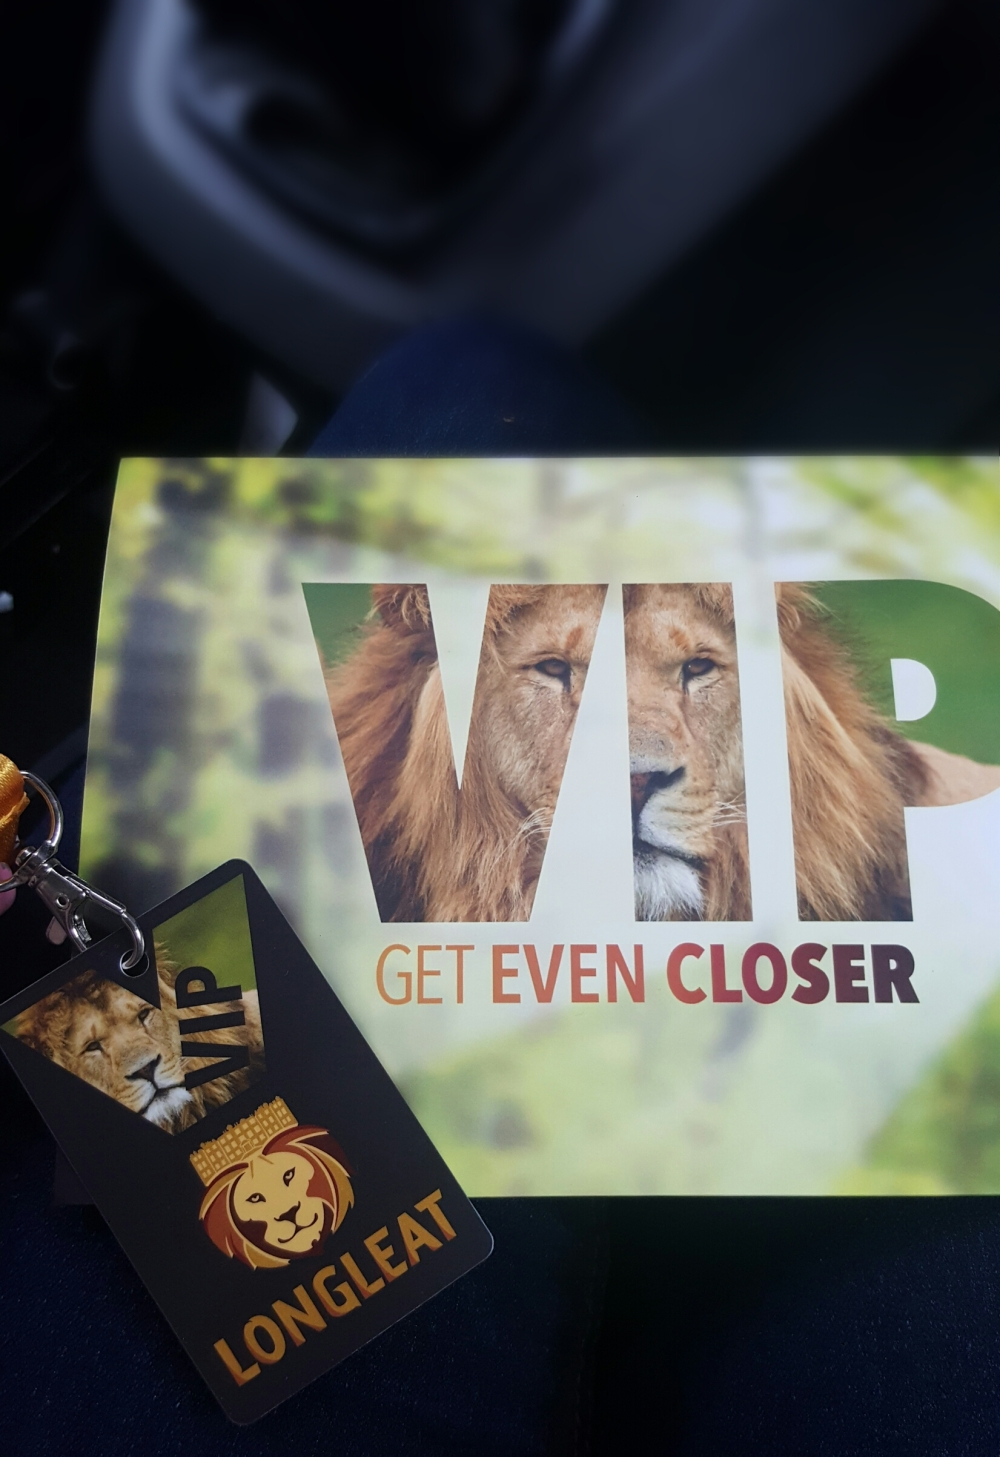 longleat VIP packagd